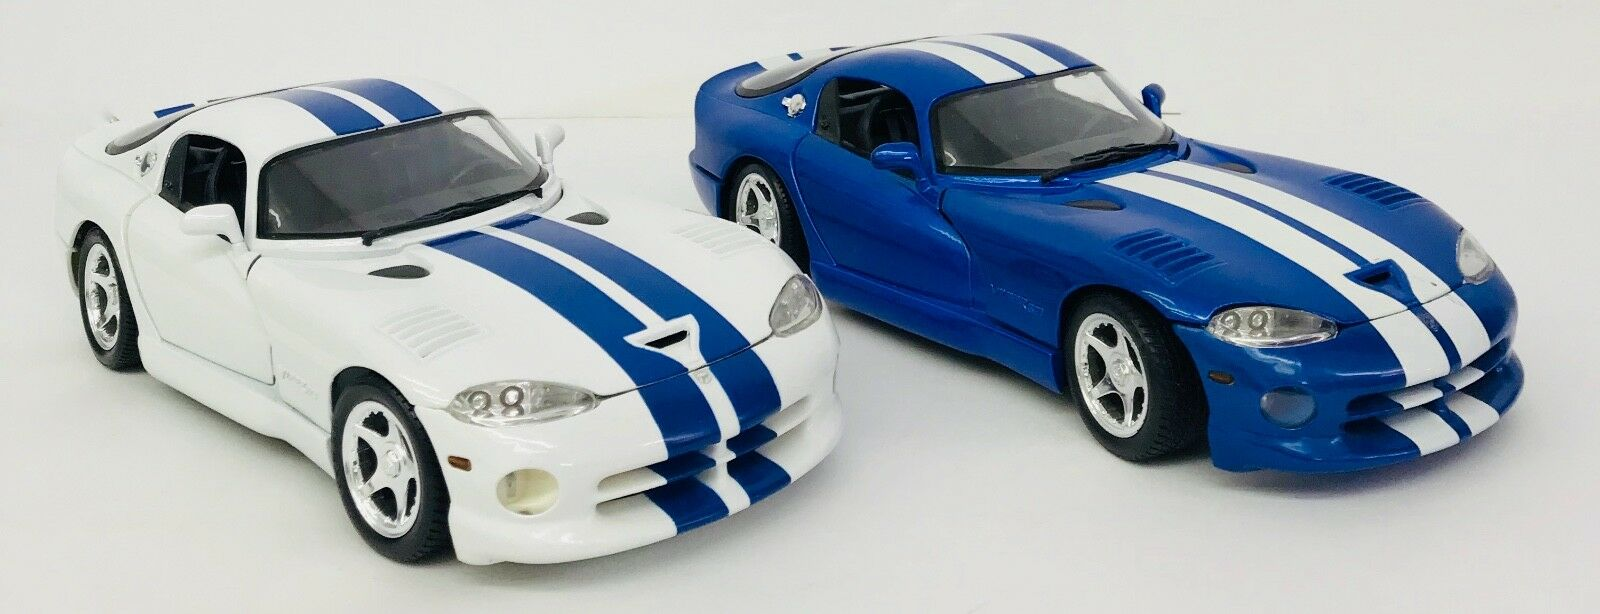 Maisto Special Special Special Edition 1996 Dodge Viper GTS Set Of 2 Scale 1 18  bluee & White becd25